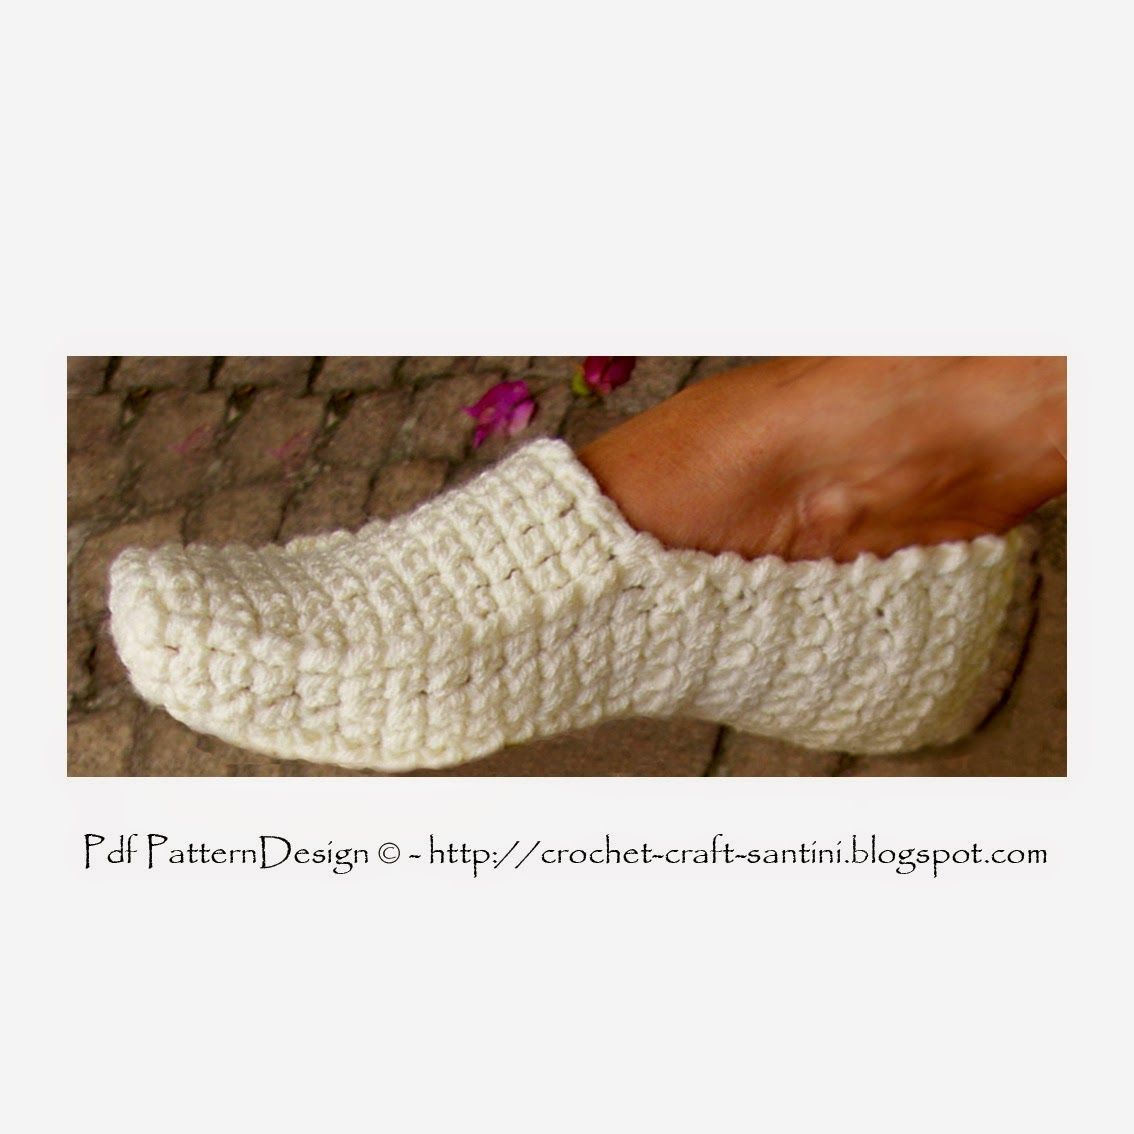 Crochet & Craft | Proyectos que debo intentar | Pinterest ...